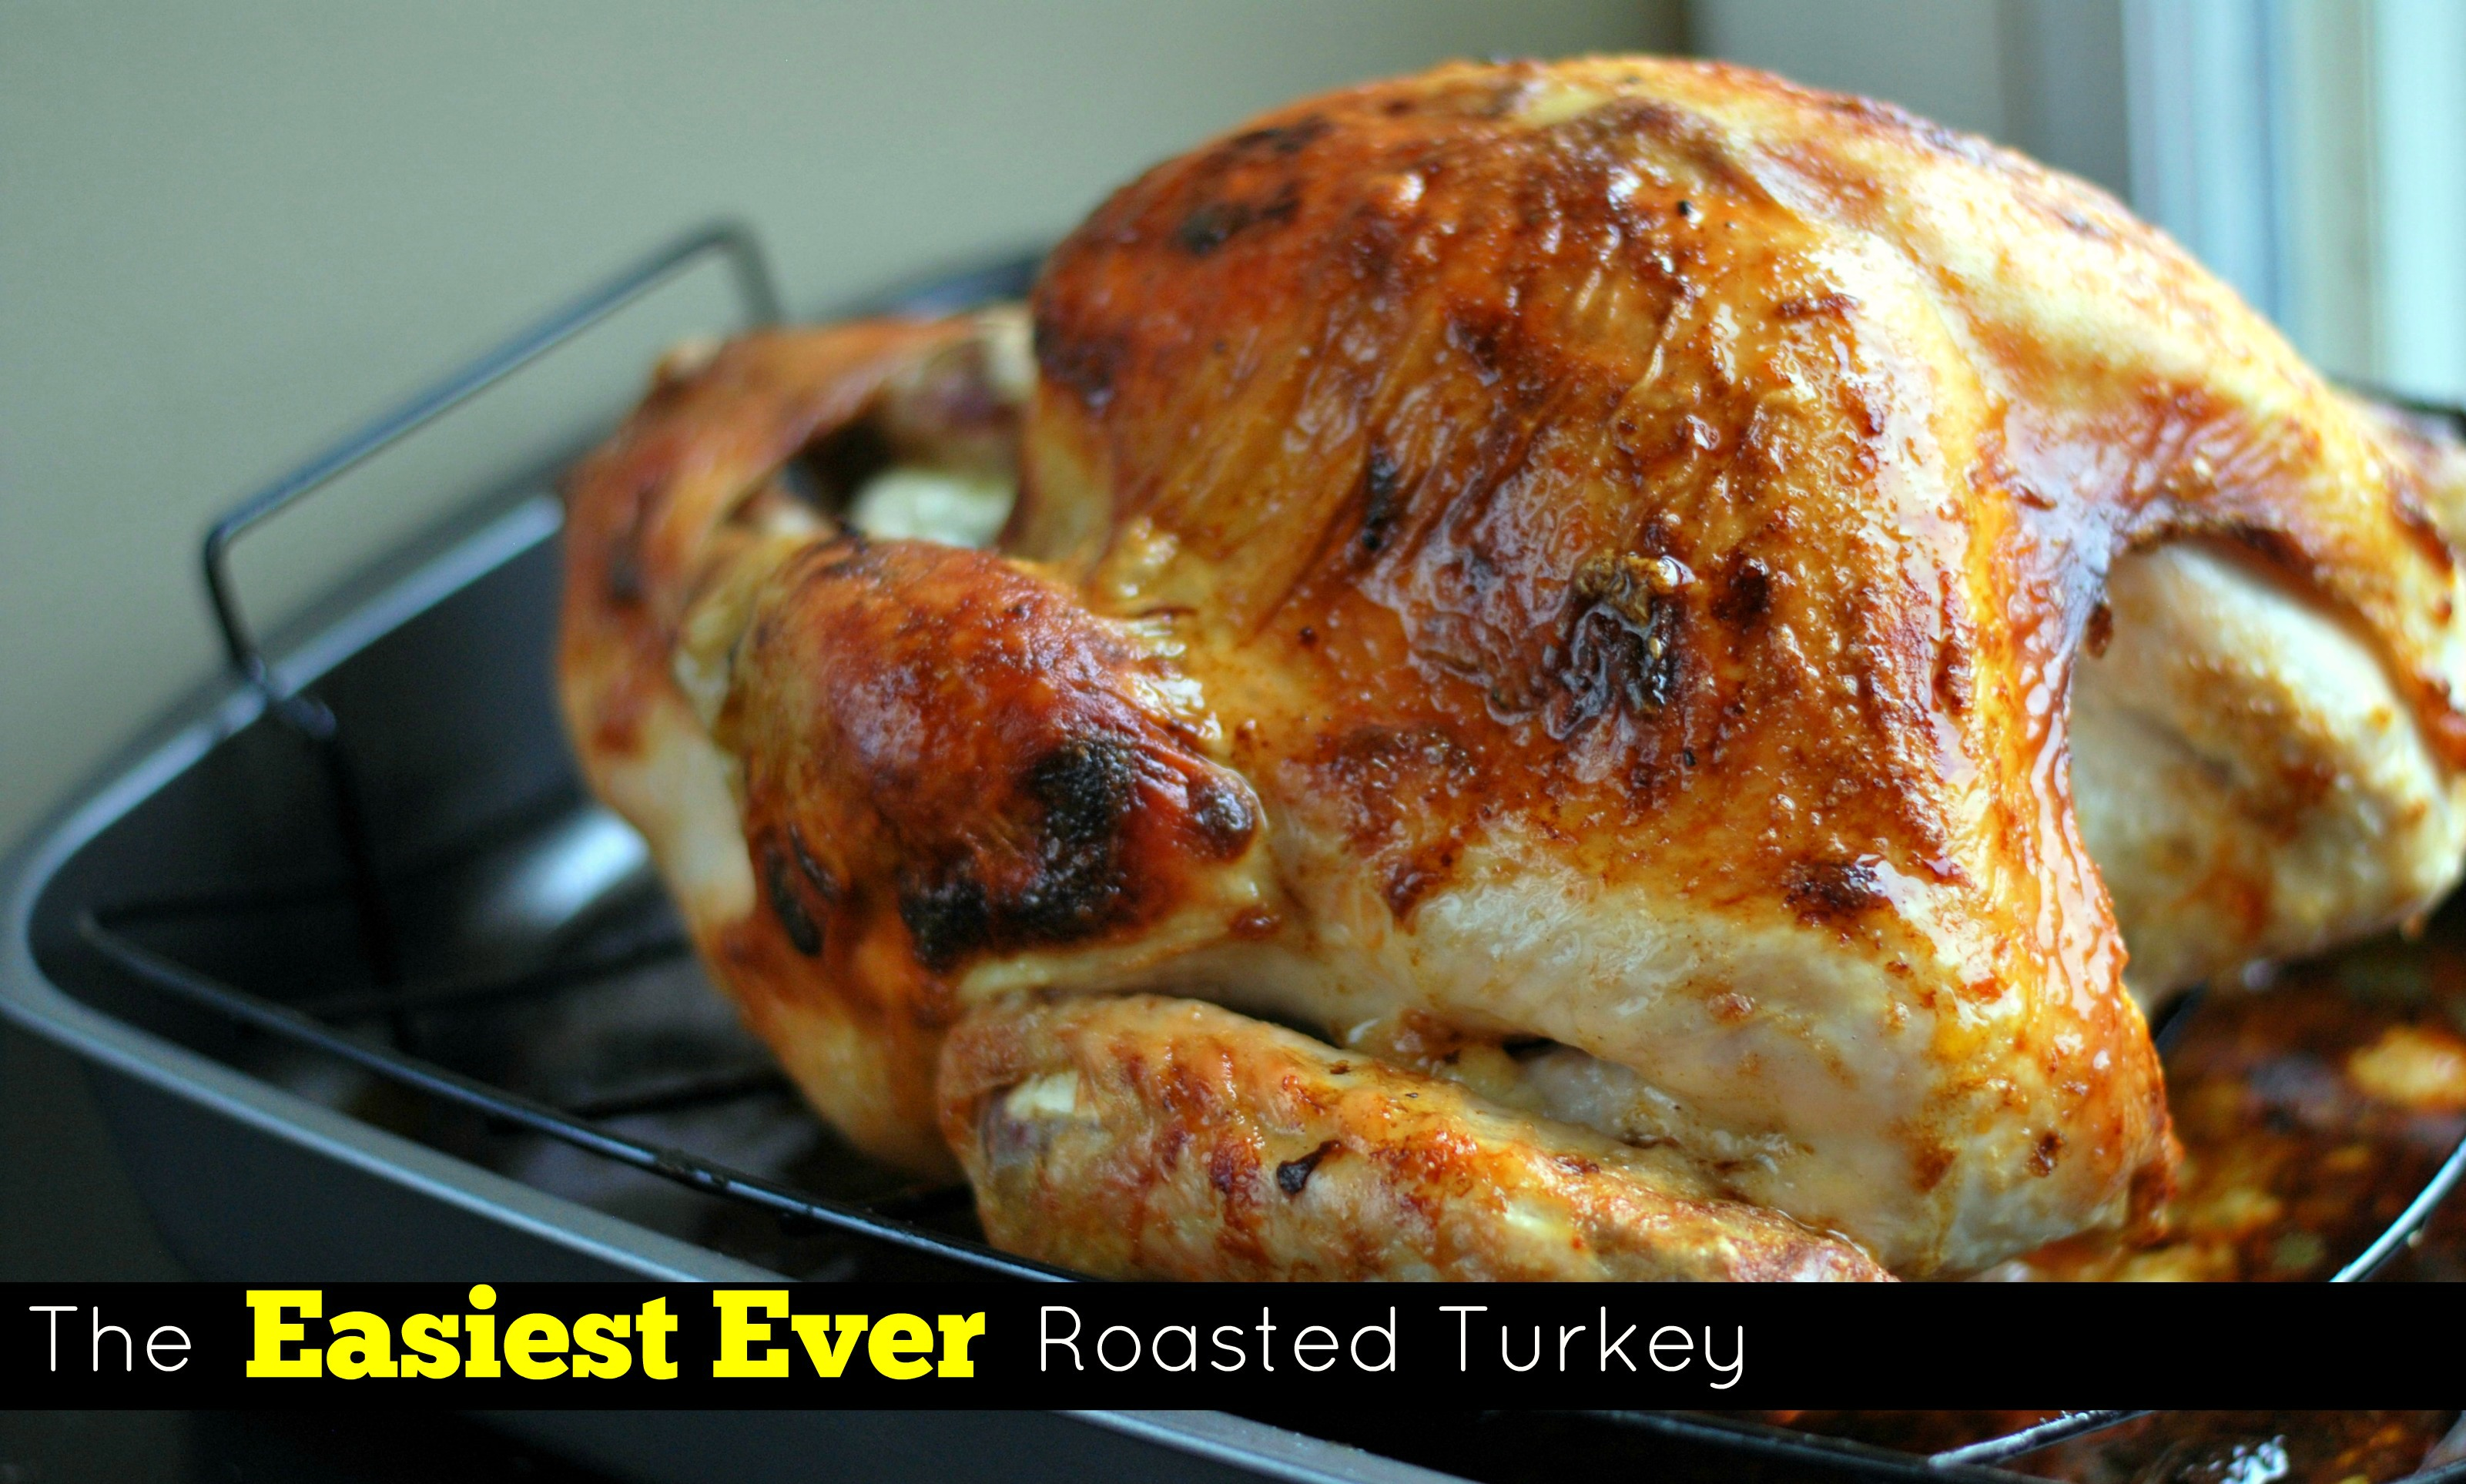 The Easiest Ever Roasted Turkey